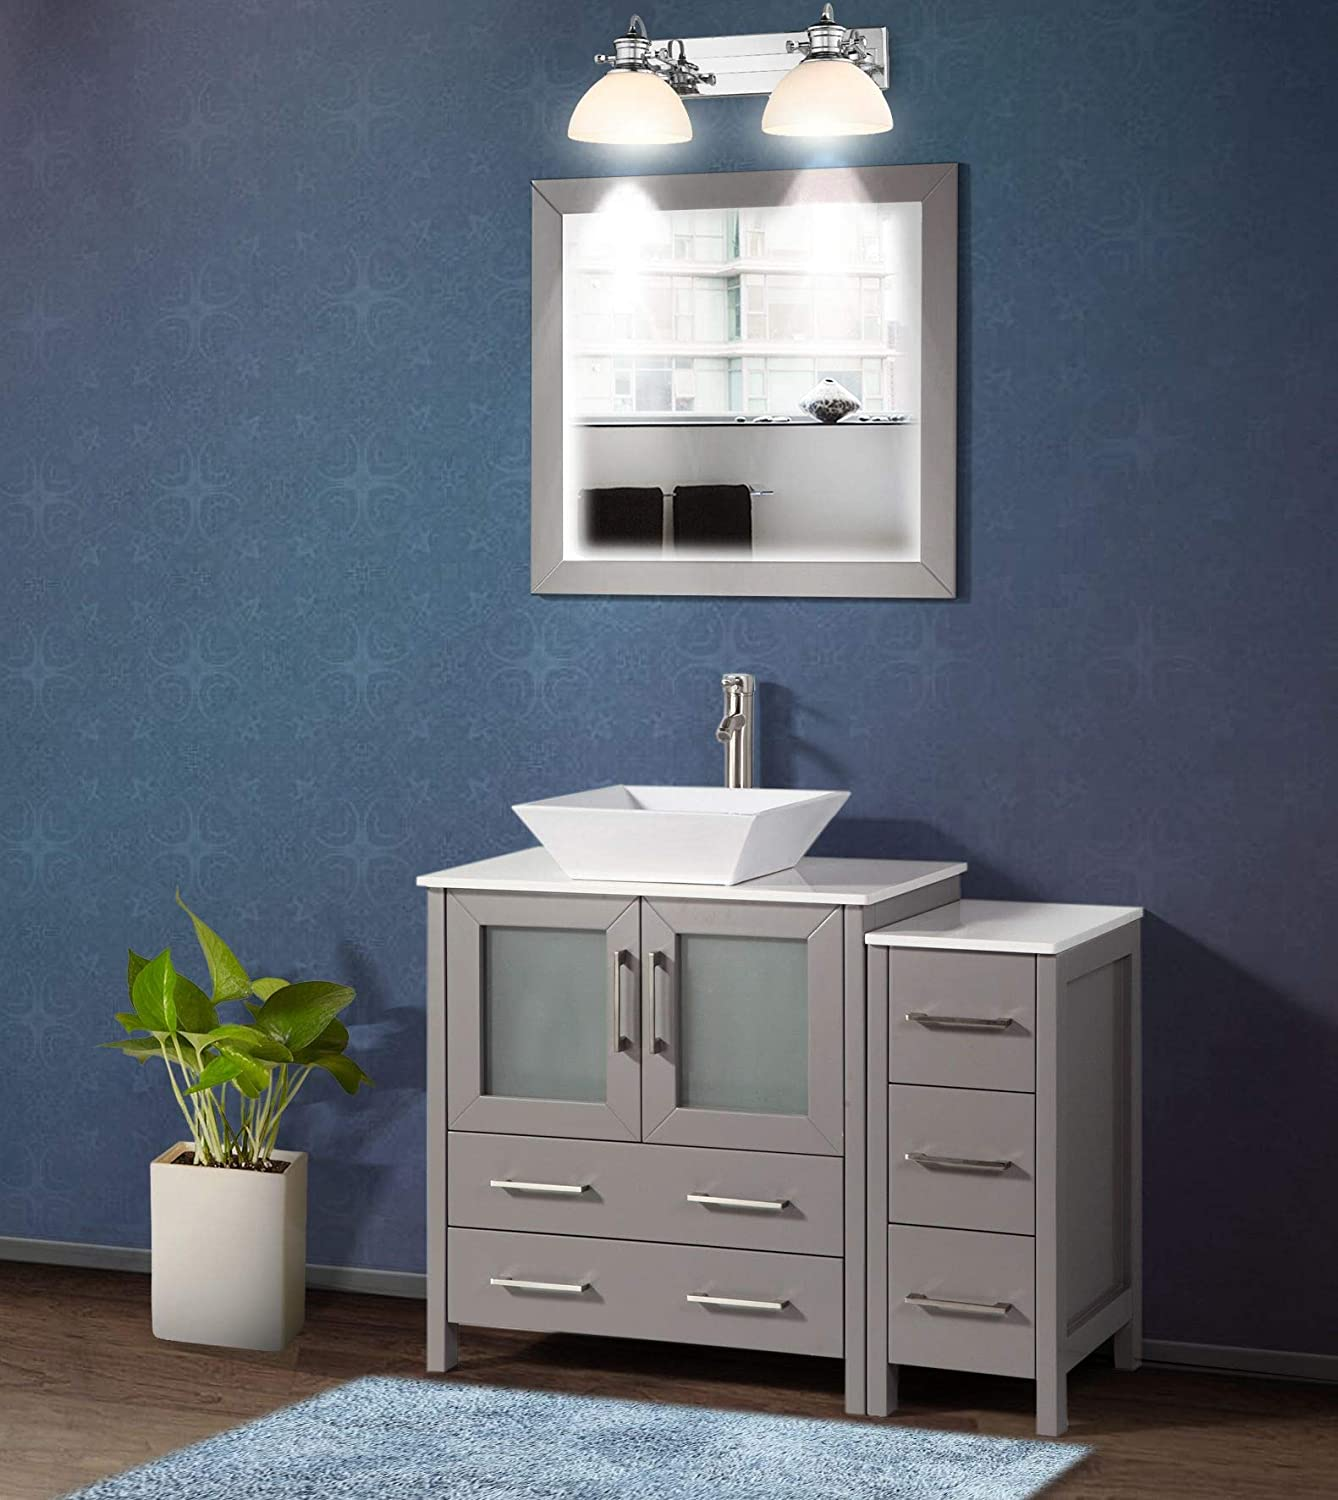 Amazon Com Vanity Art 42 Inch Single Sink Bathroom Vanity Set 1 Shelf 5 Drawers Quartz Top And Ceramic Vessel Sink Bathroom Cabinet With Free Mirror Va3130 42 G Kitchen Dining